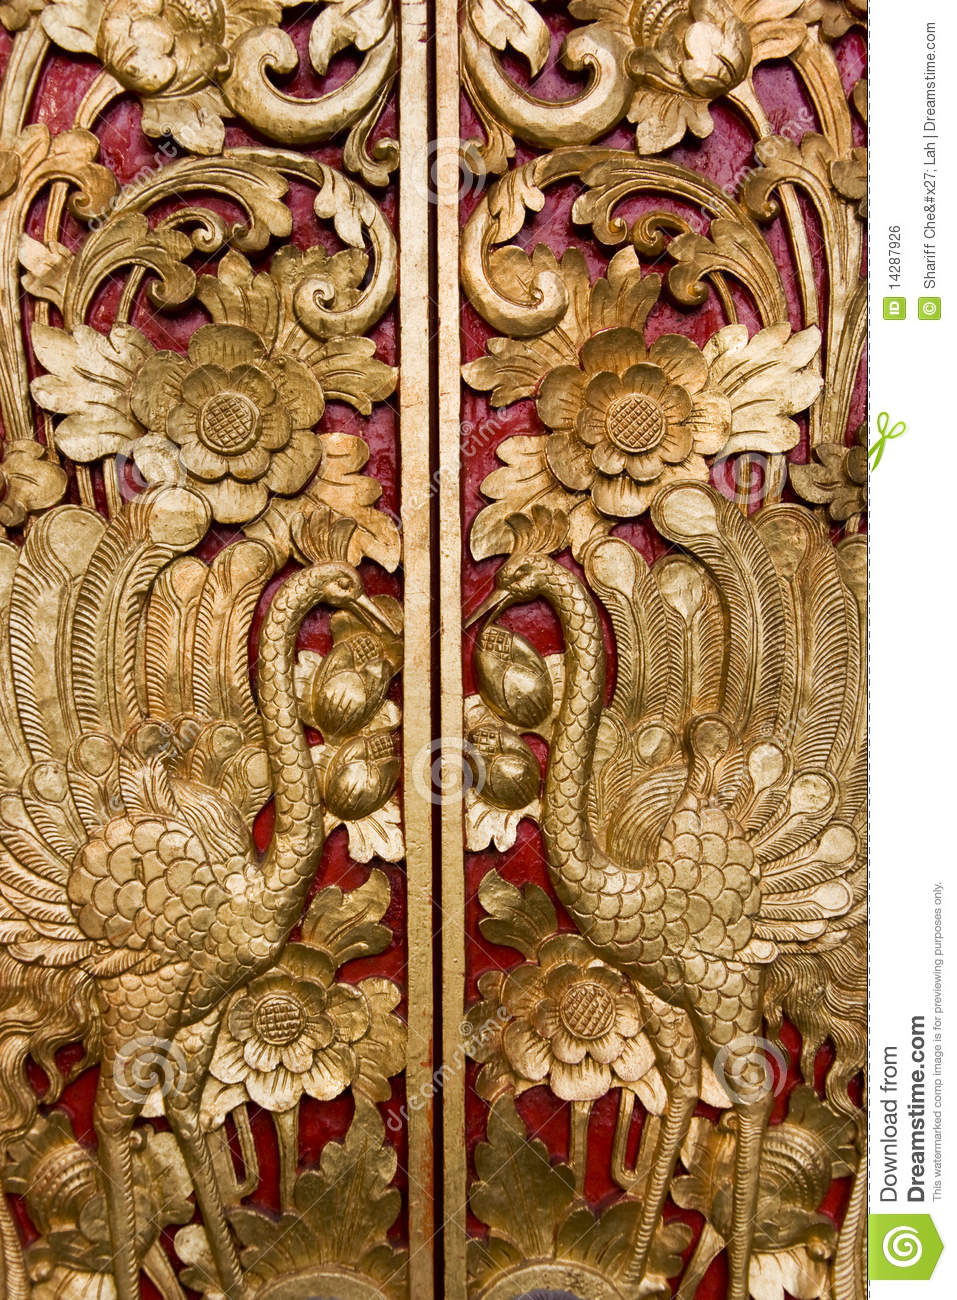 Door Carving At Pura Masceti Bali Indonesia Stock Photo